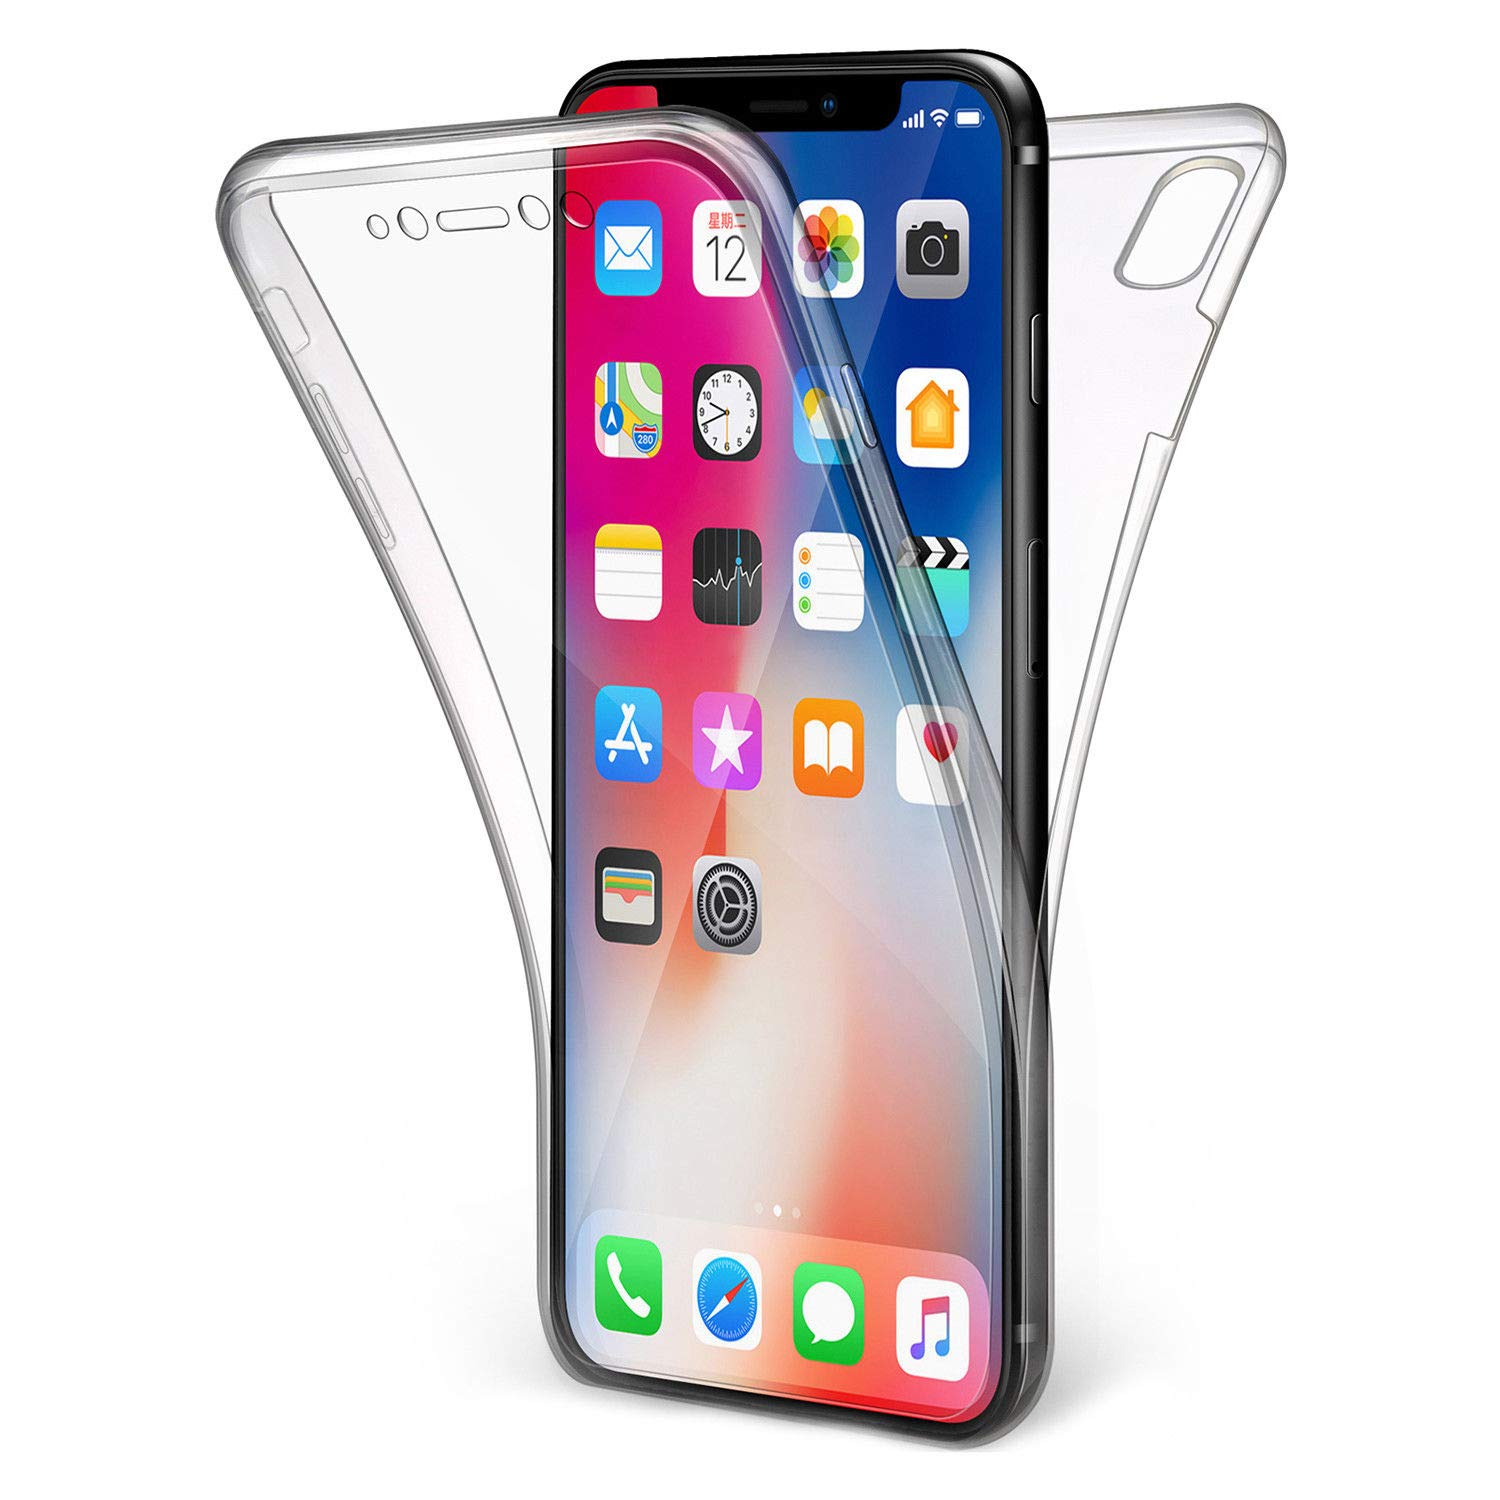 competitive price 33ef0 282c0 iPhone X Full Cover Case/Full Body Cover - Clear Case - 360 Degree Design -  Front + Back Protection - Olixar FlexiCover - Wireless Charging Compatible